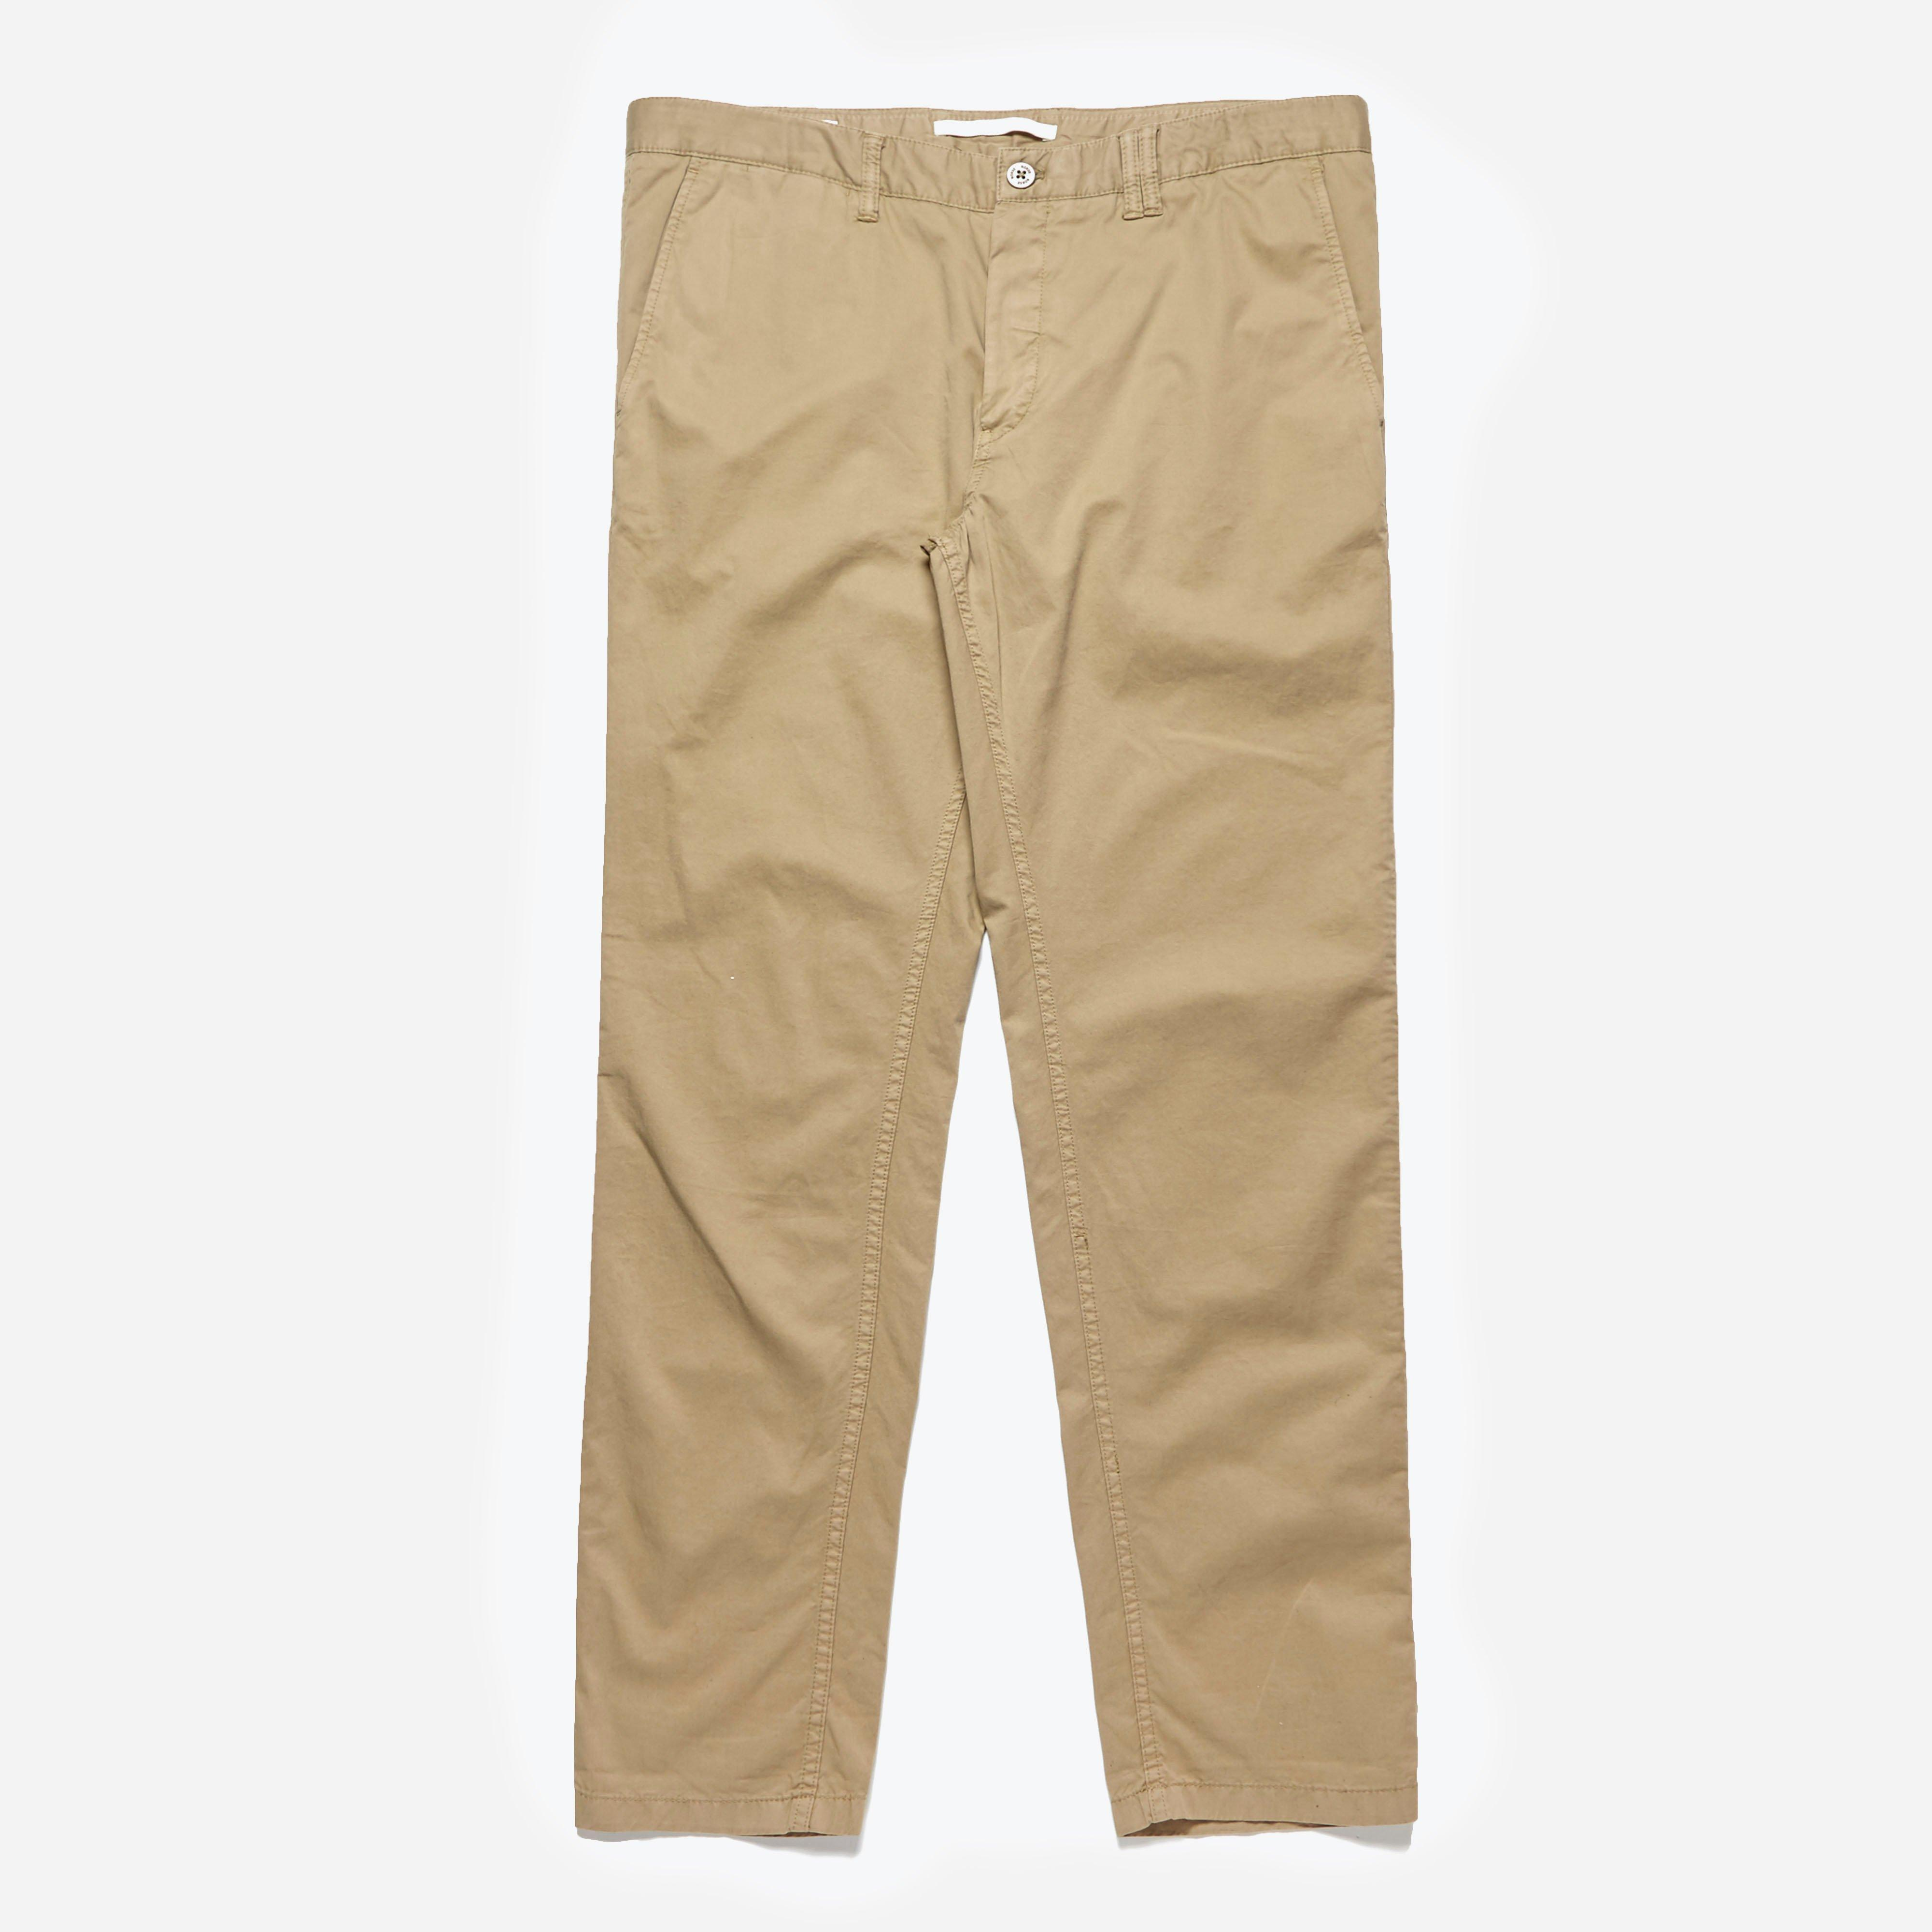 Norse Projects Aros Slim Light Twill Chino